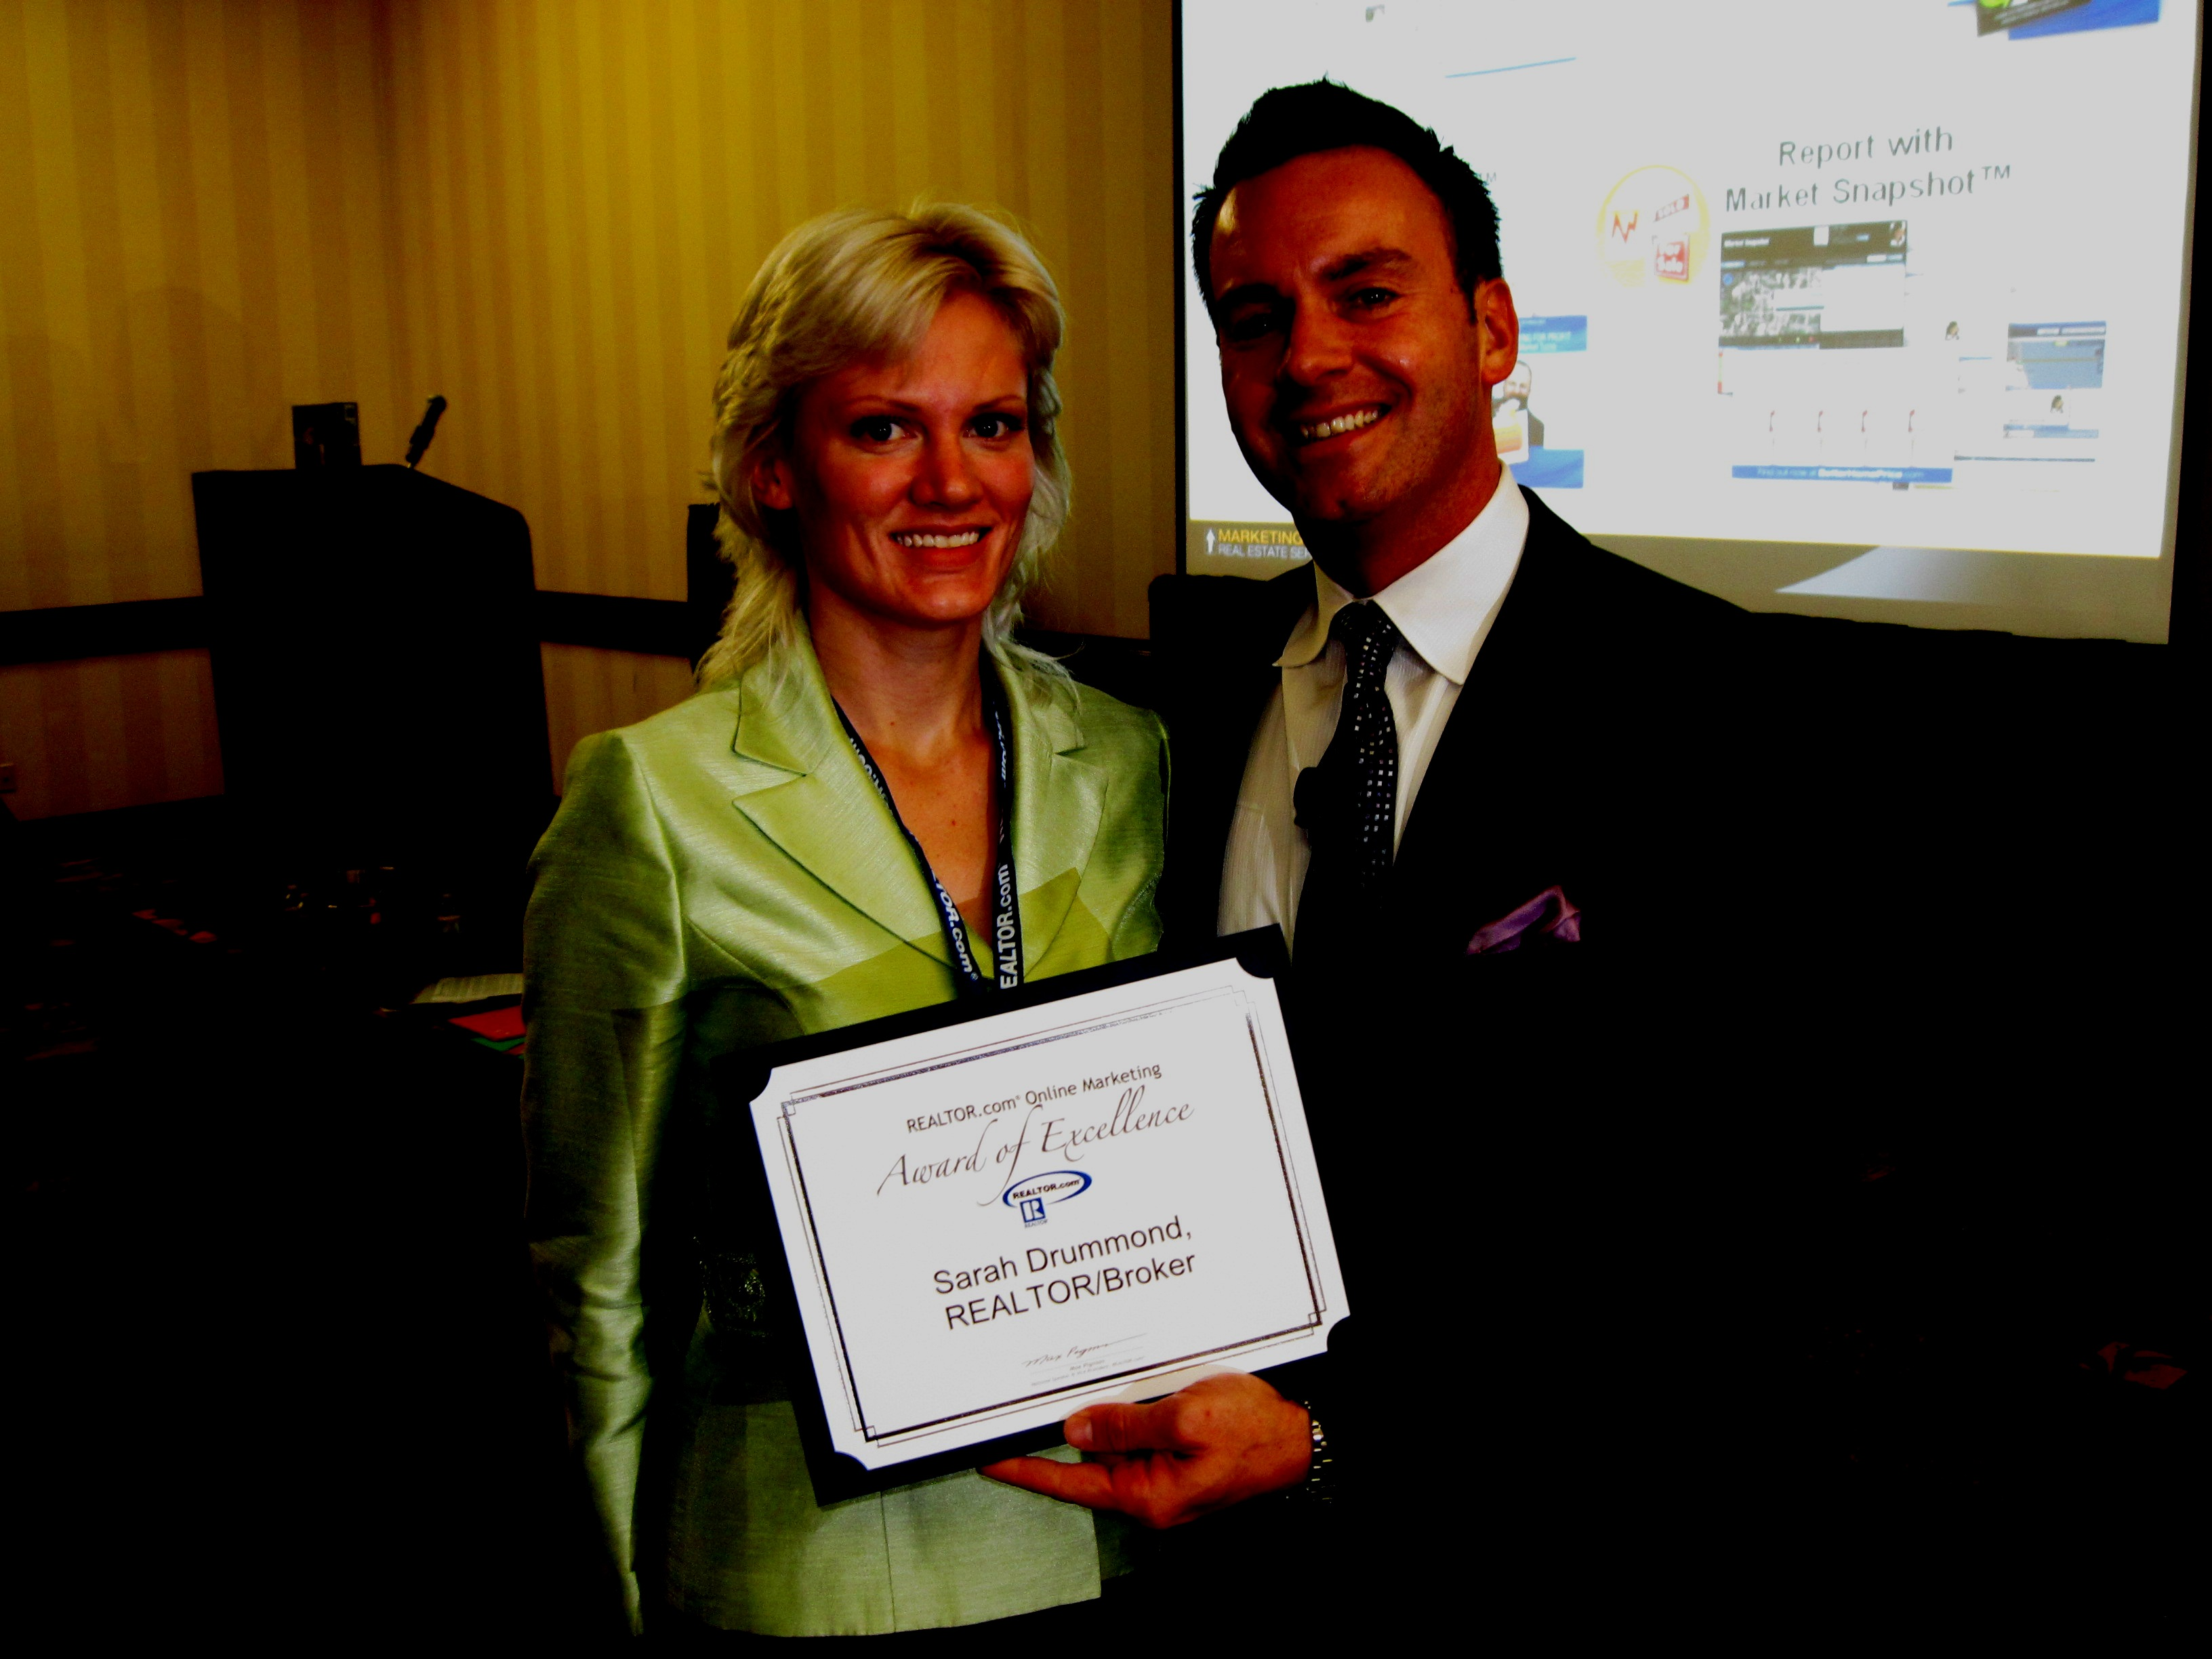 Sarah Drummond Recognized for Internet Marketing Excellence